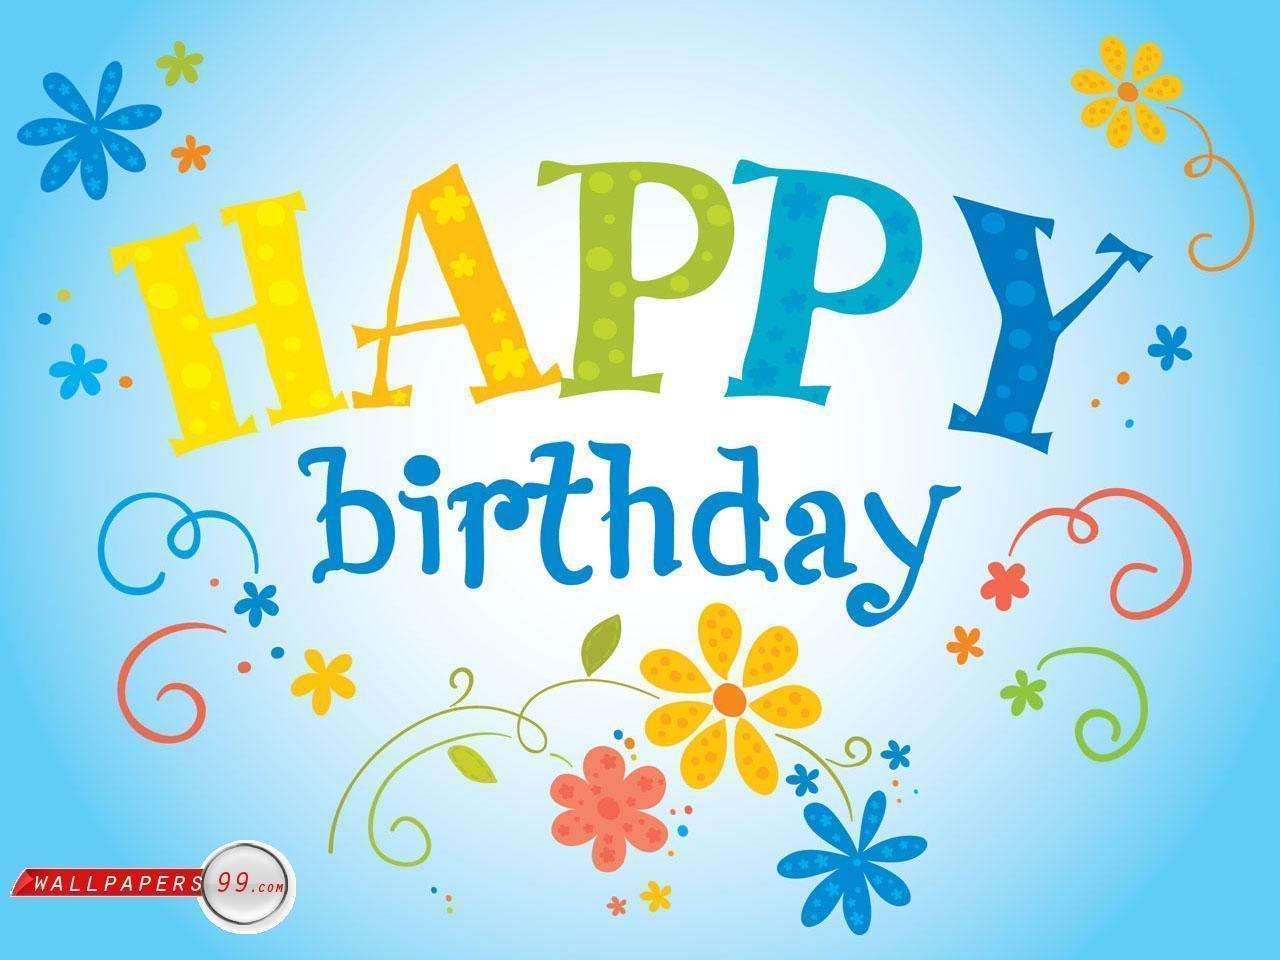 HD Wallpapers Happy Birthday Free Hd Wallpapers Happy Birthday Dear